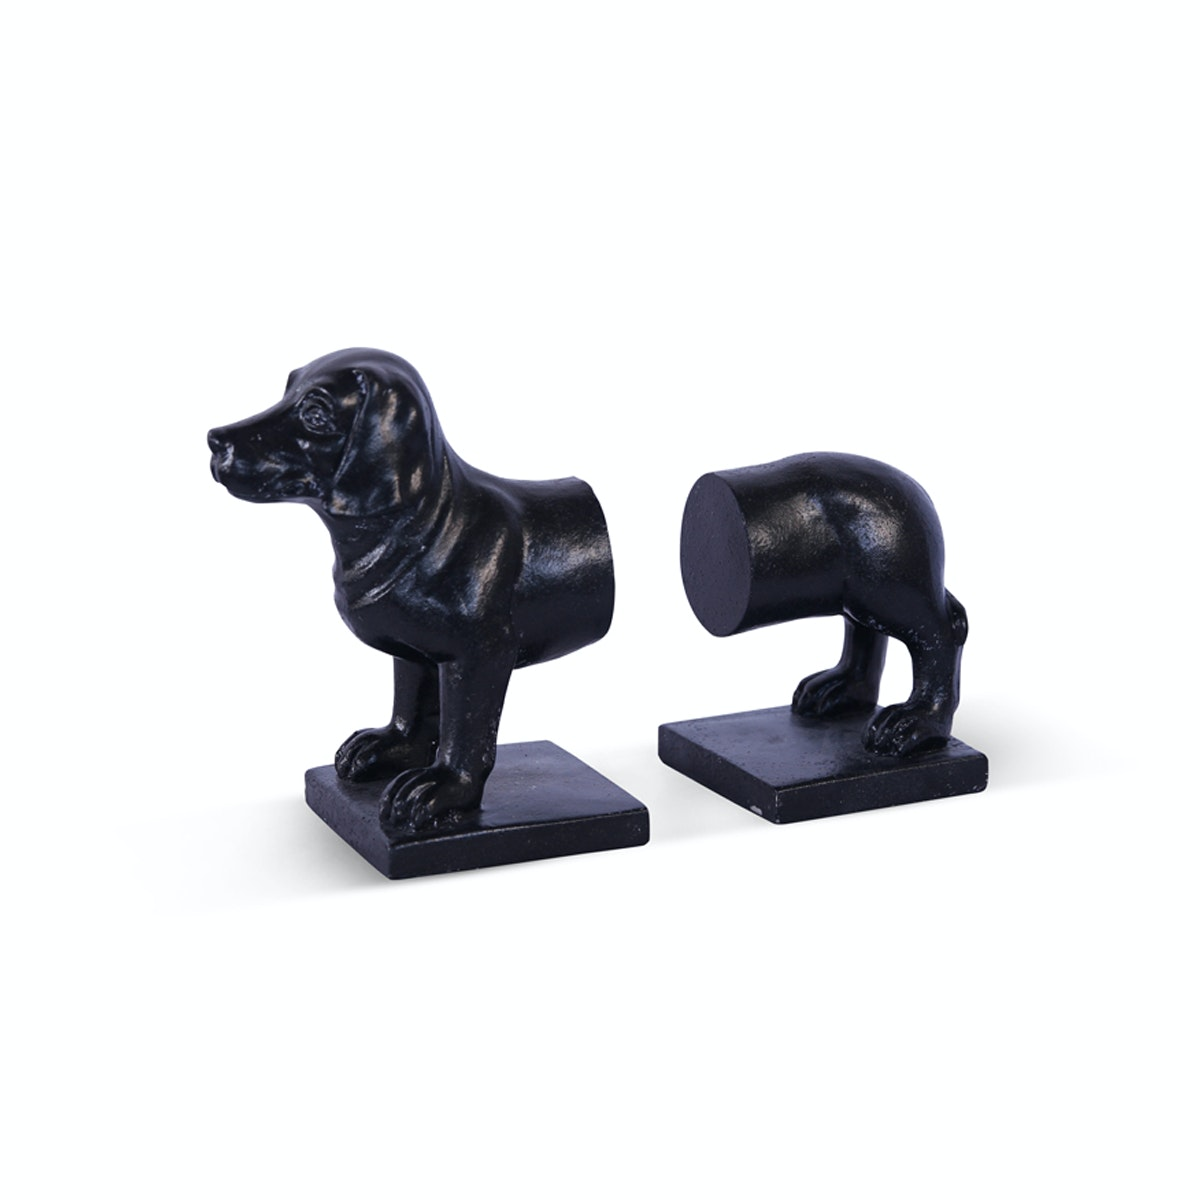 Vivere Book End Basset Hound